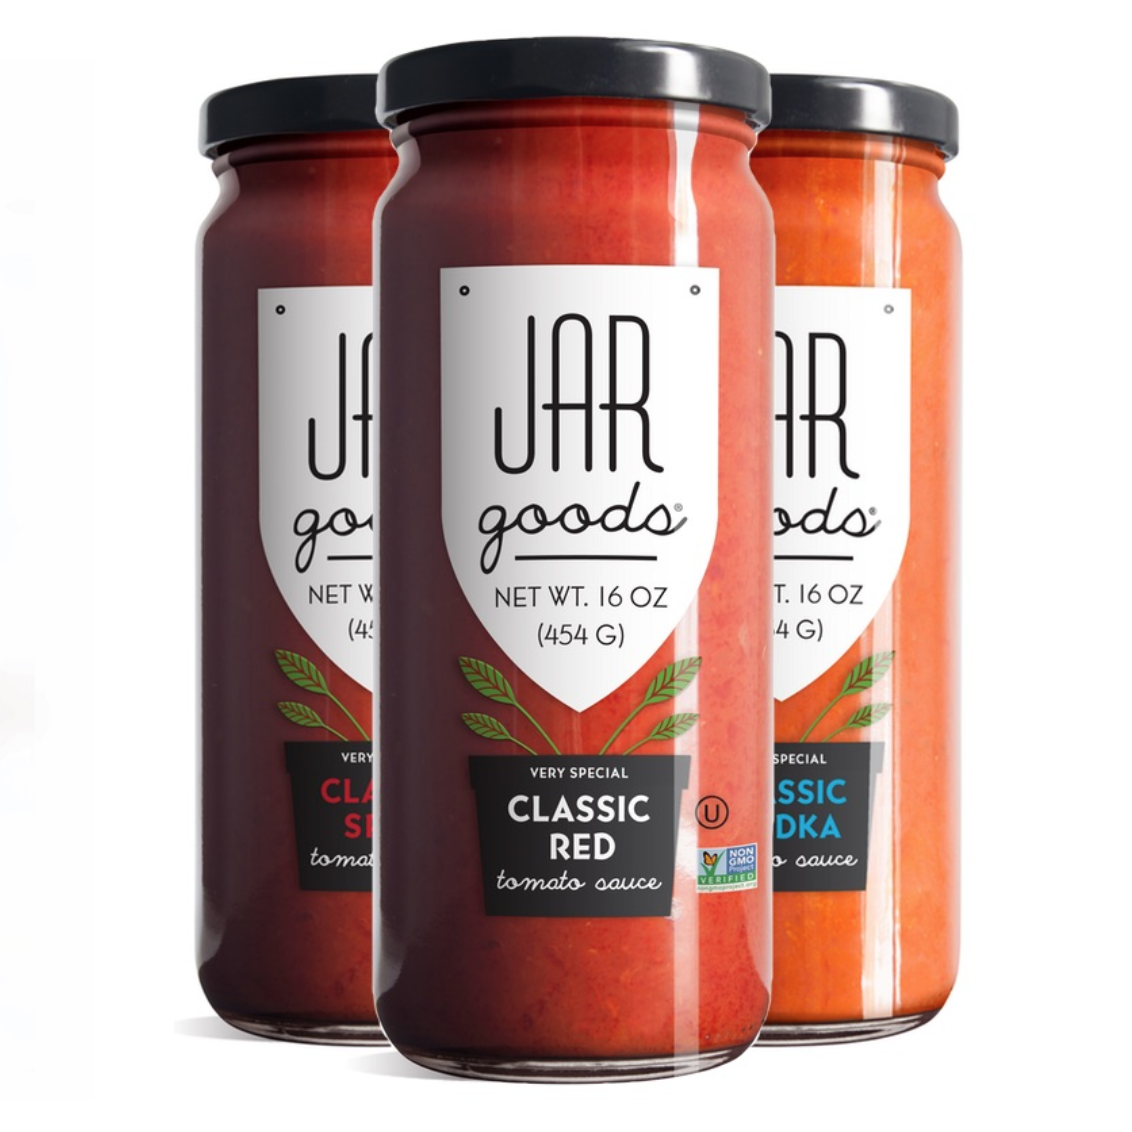 Classic Variety Sauces $19.00